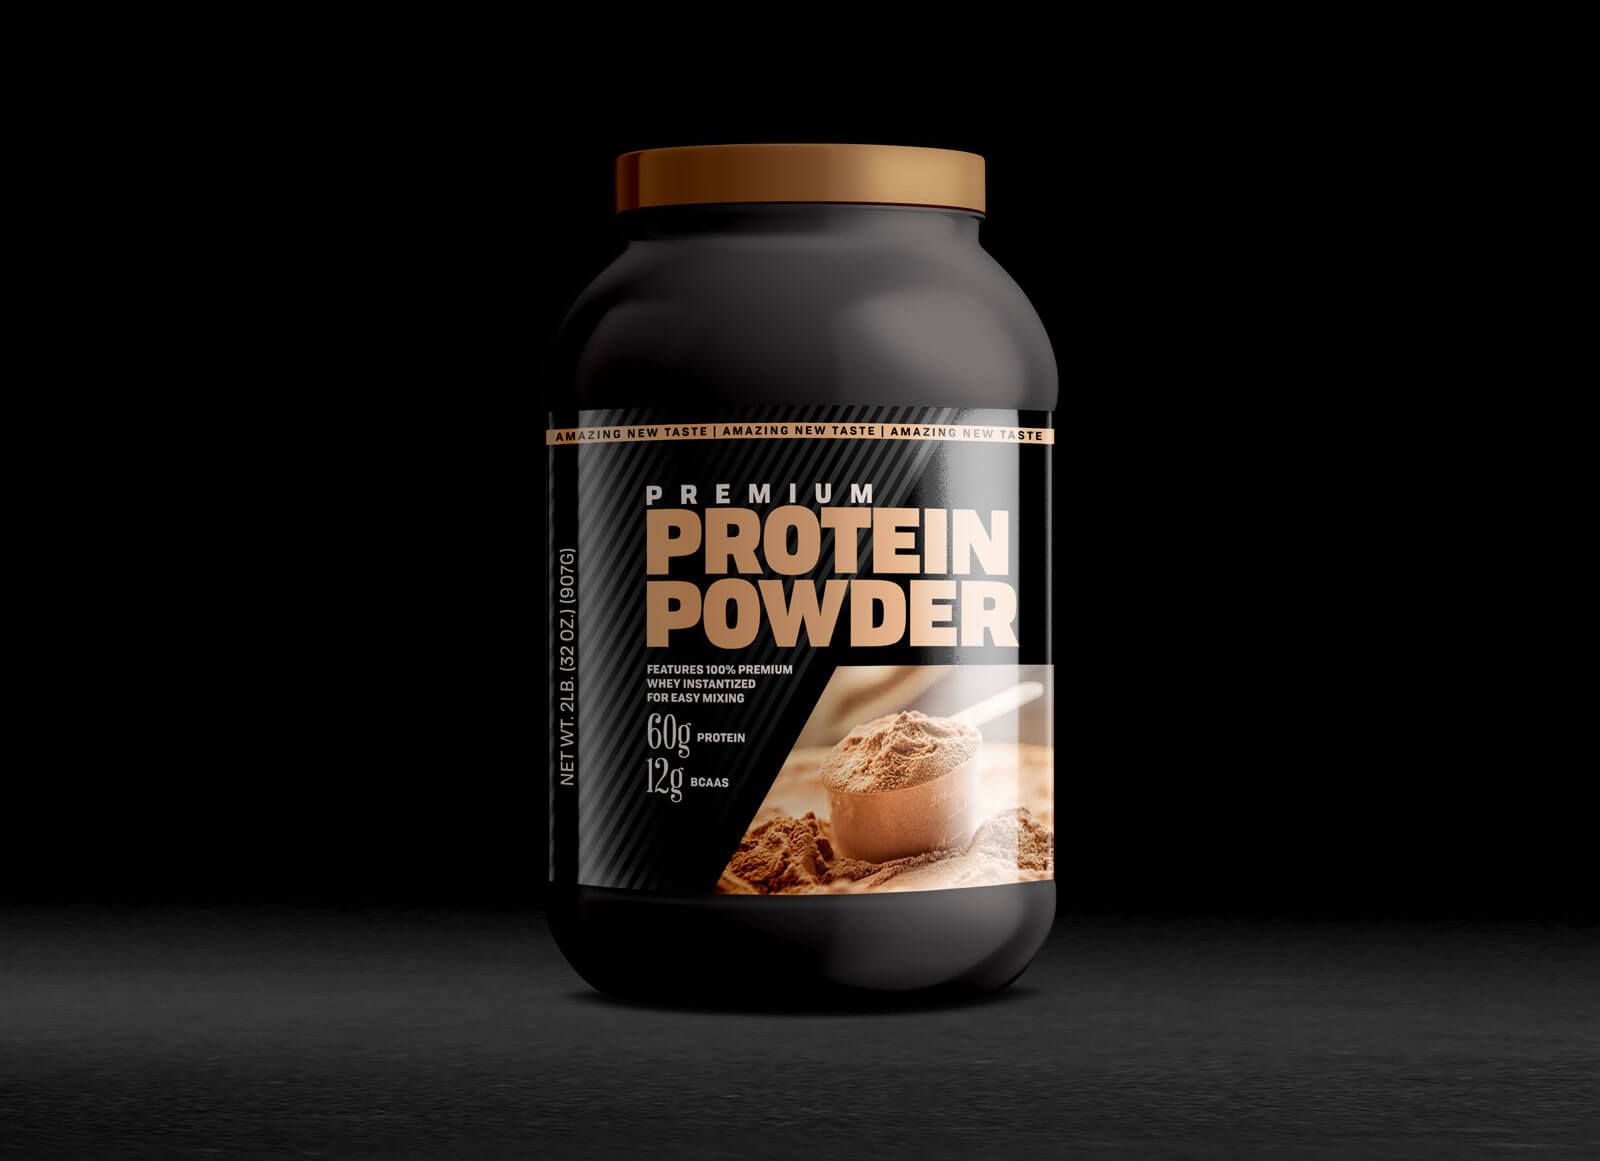 Free-Protein-Powder-Bottle-Container-Mockup-PSD